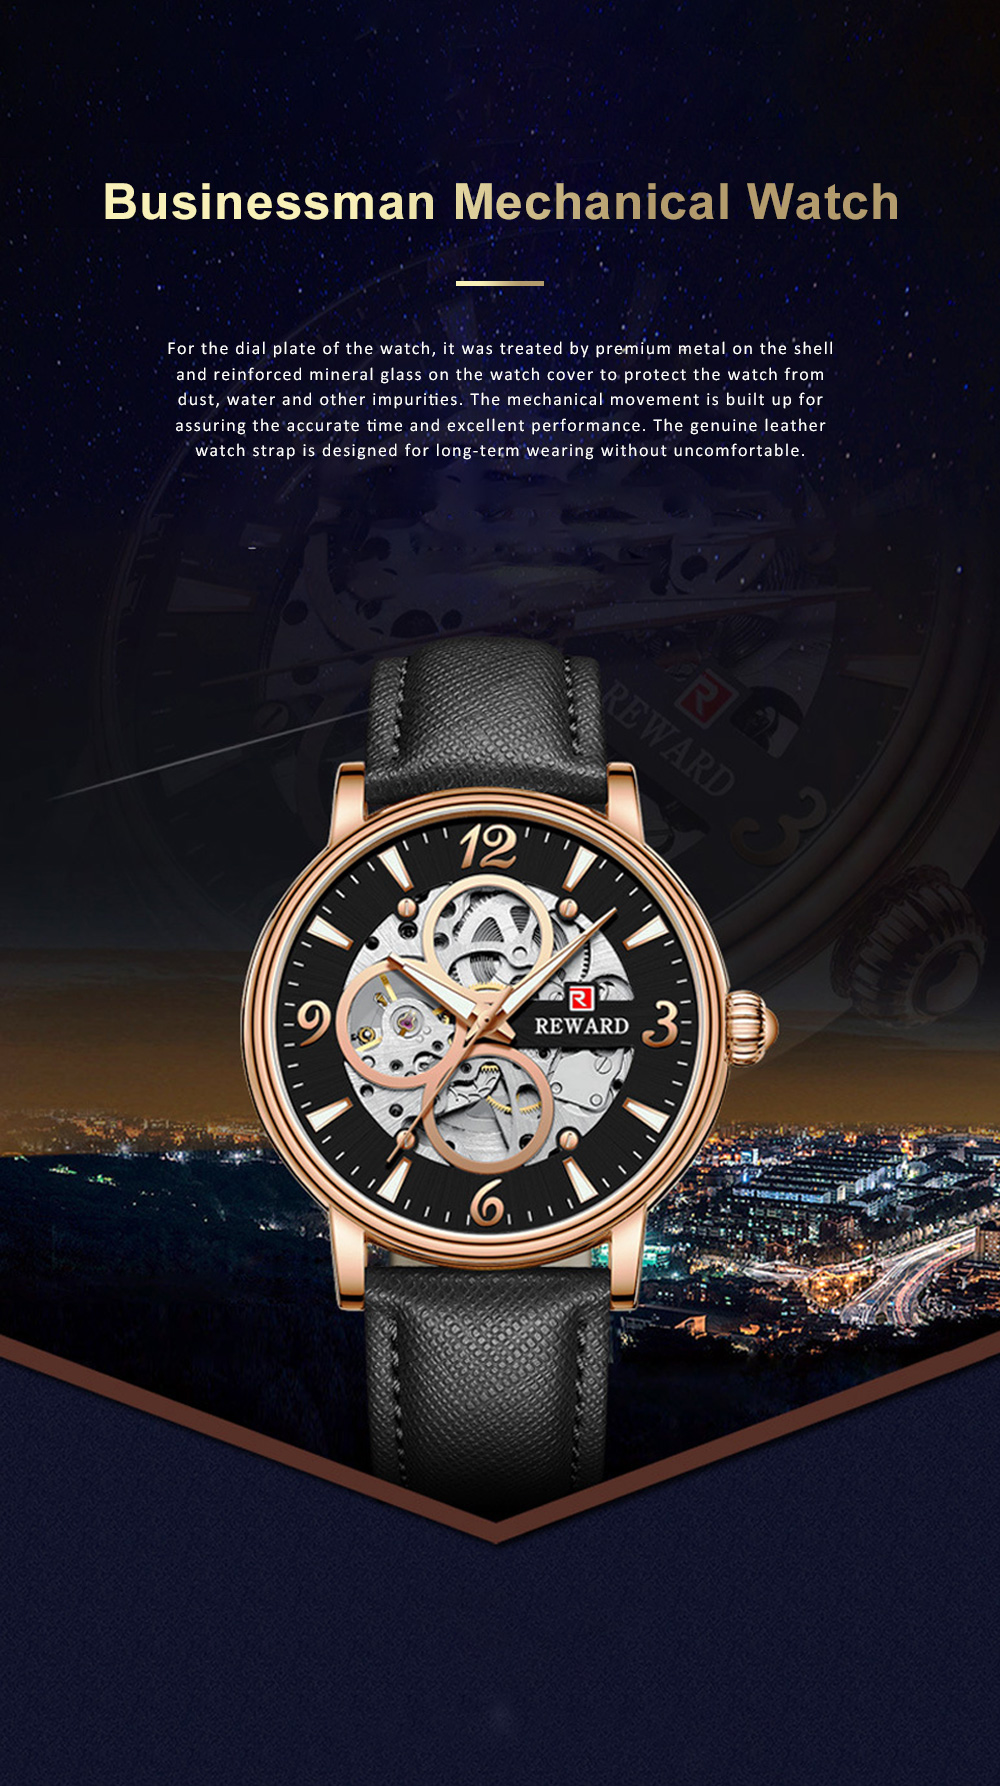 Businessman Mechanical Watch with Genuine Leather Watch Strap, Waterproof Hollow-out Bottom Cover Automatic Mechanic Men's Watch 0